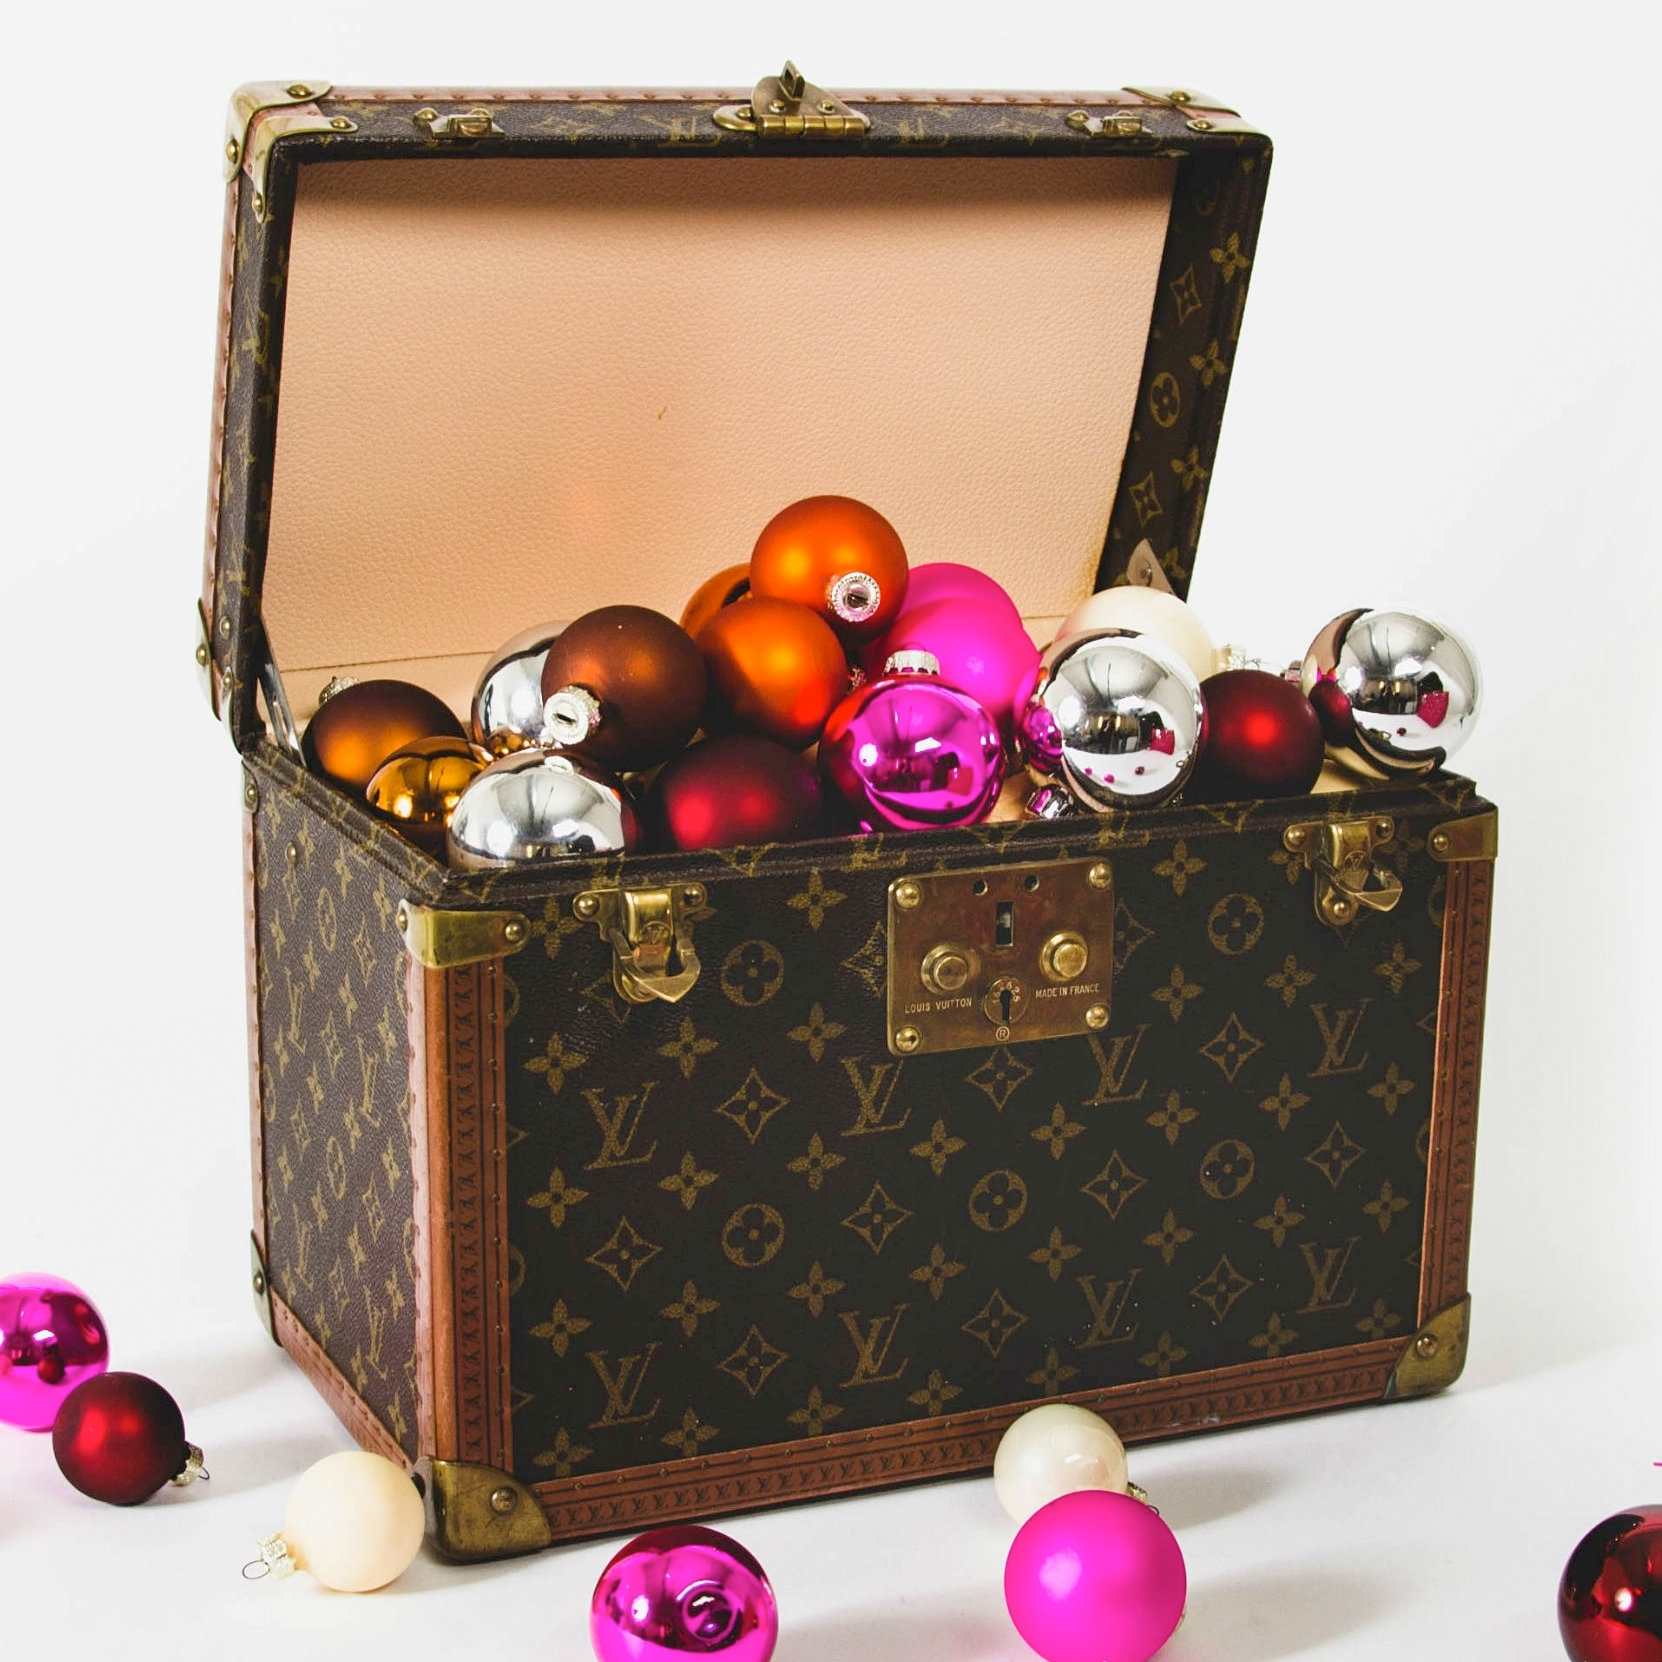 The most luxurious gifts of the season